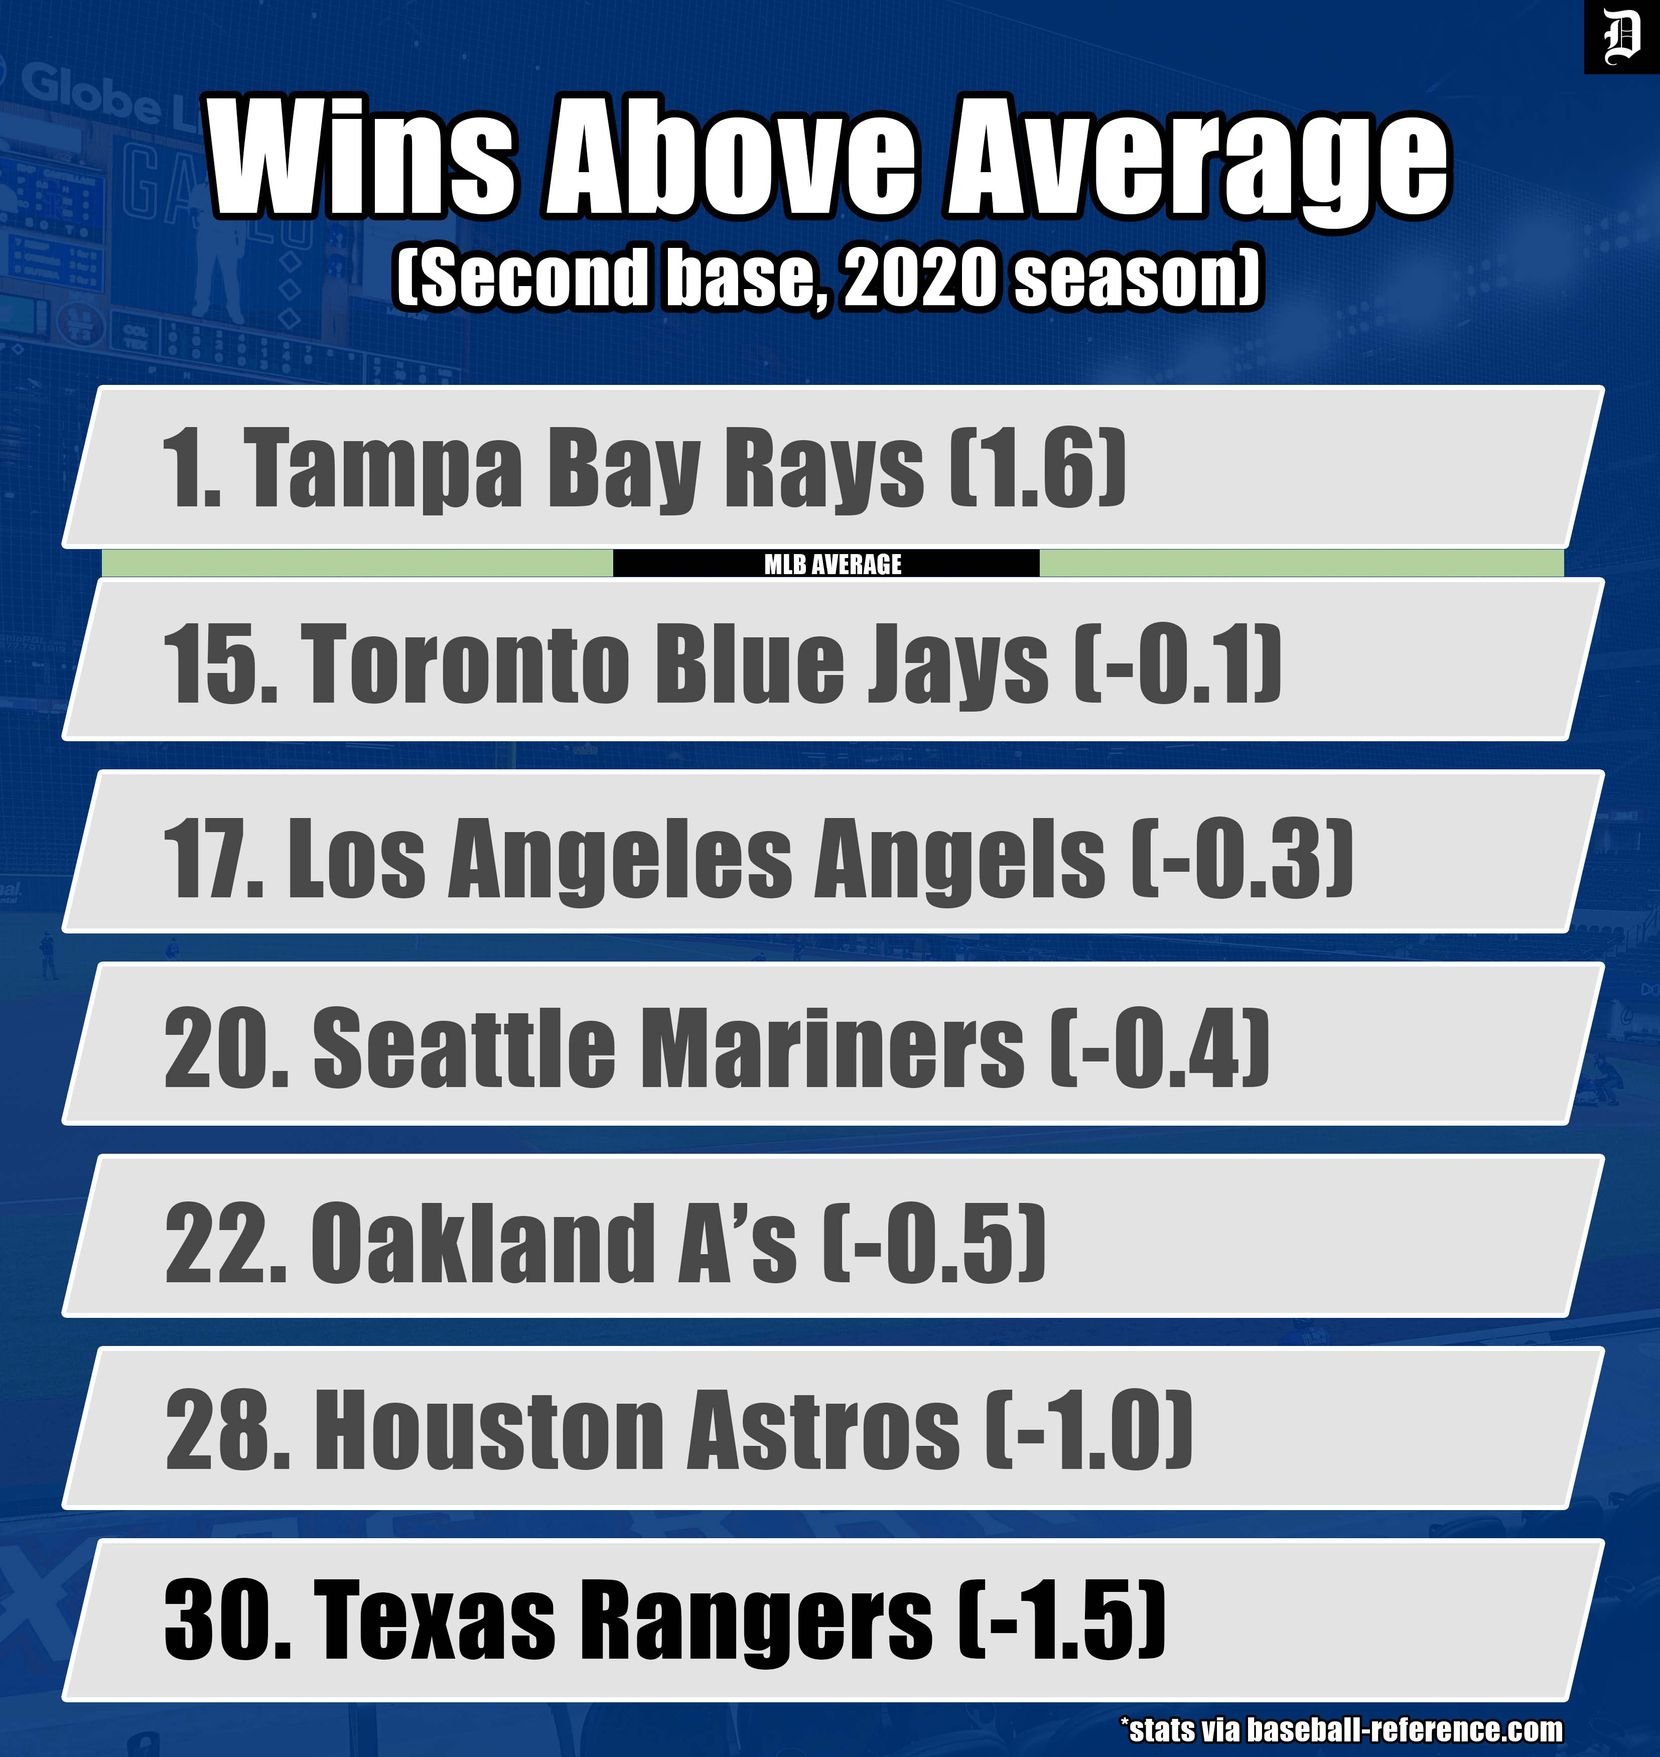 MLB Wins Above Average for the 2020 season.